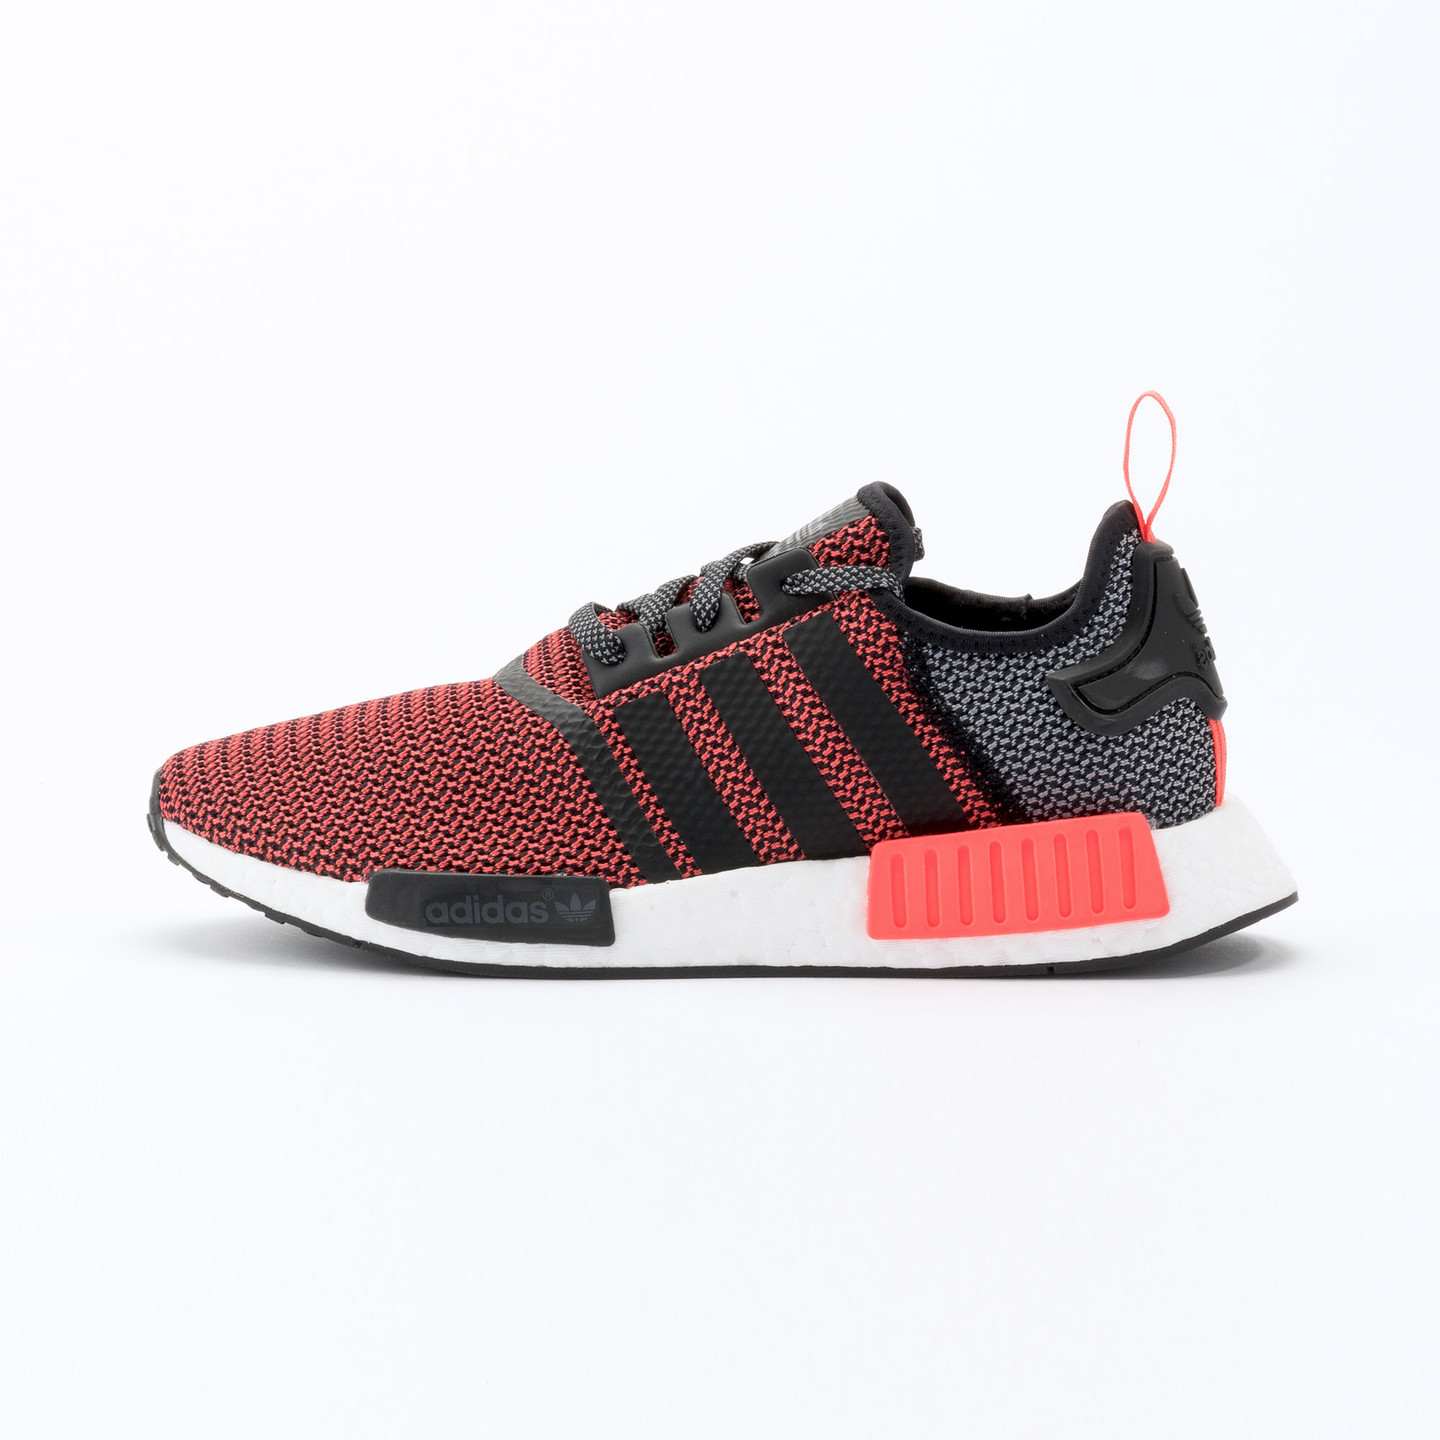 Adidas NMD R1 Runner Lush Red / Core Black S79158-42.66